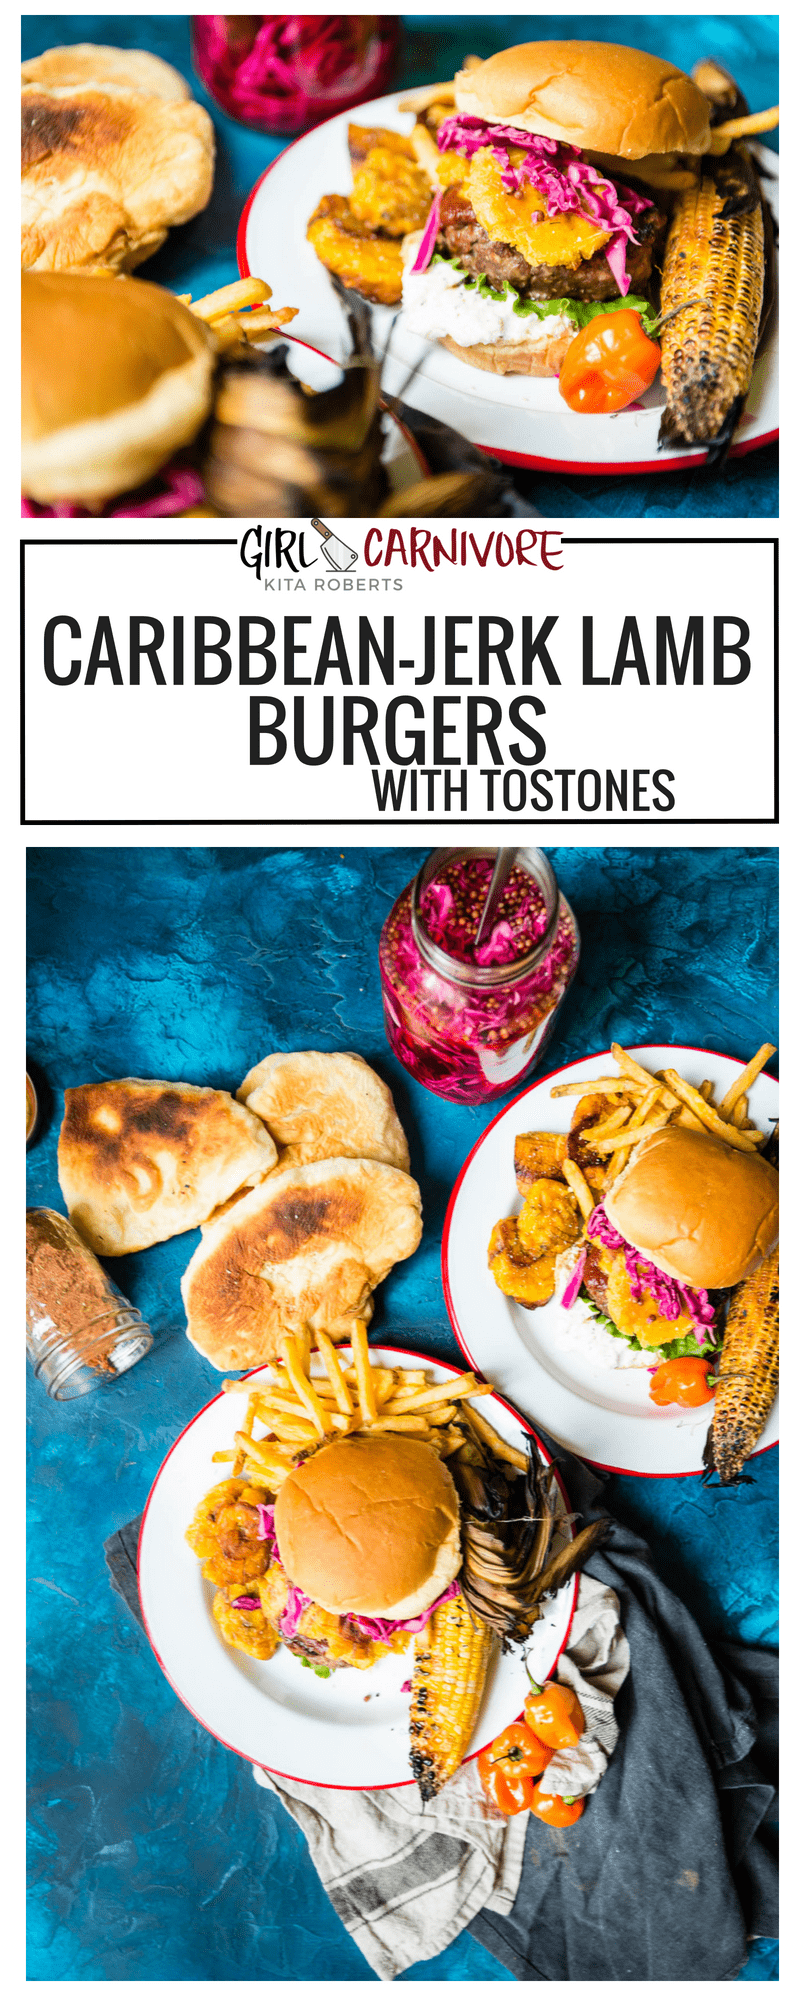 Caribbean-Jerk Lamb Burger Recipe with Tostones, pickled cabbage, and goat cheese